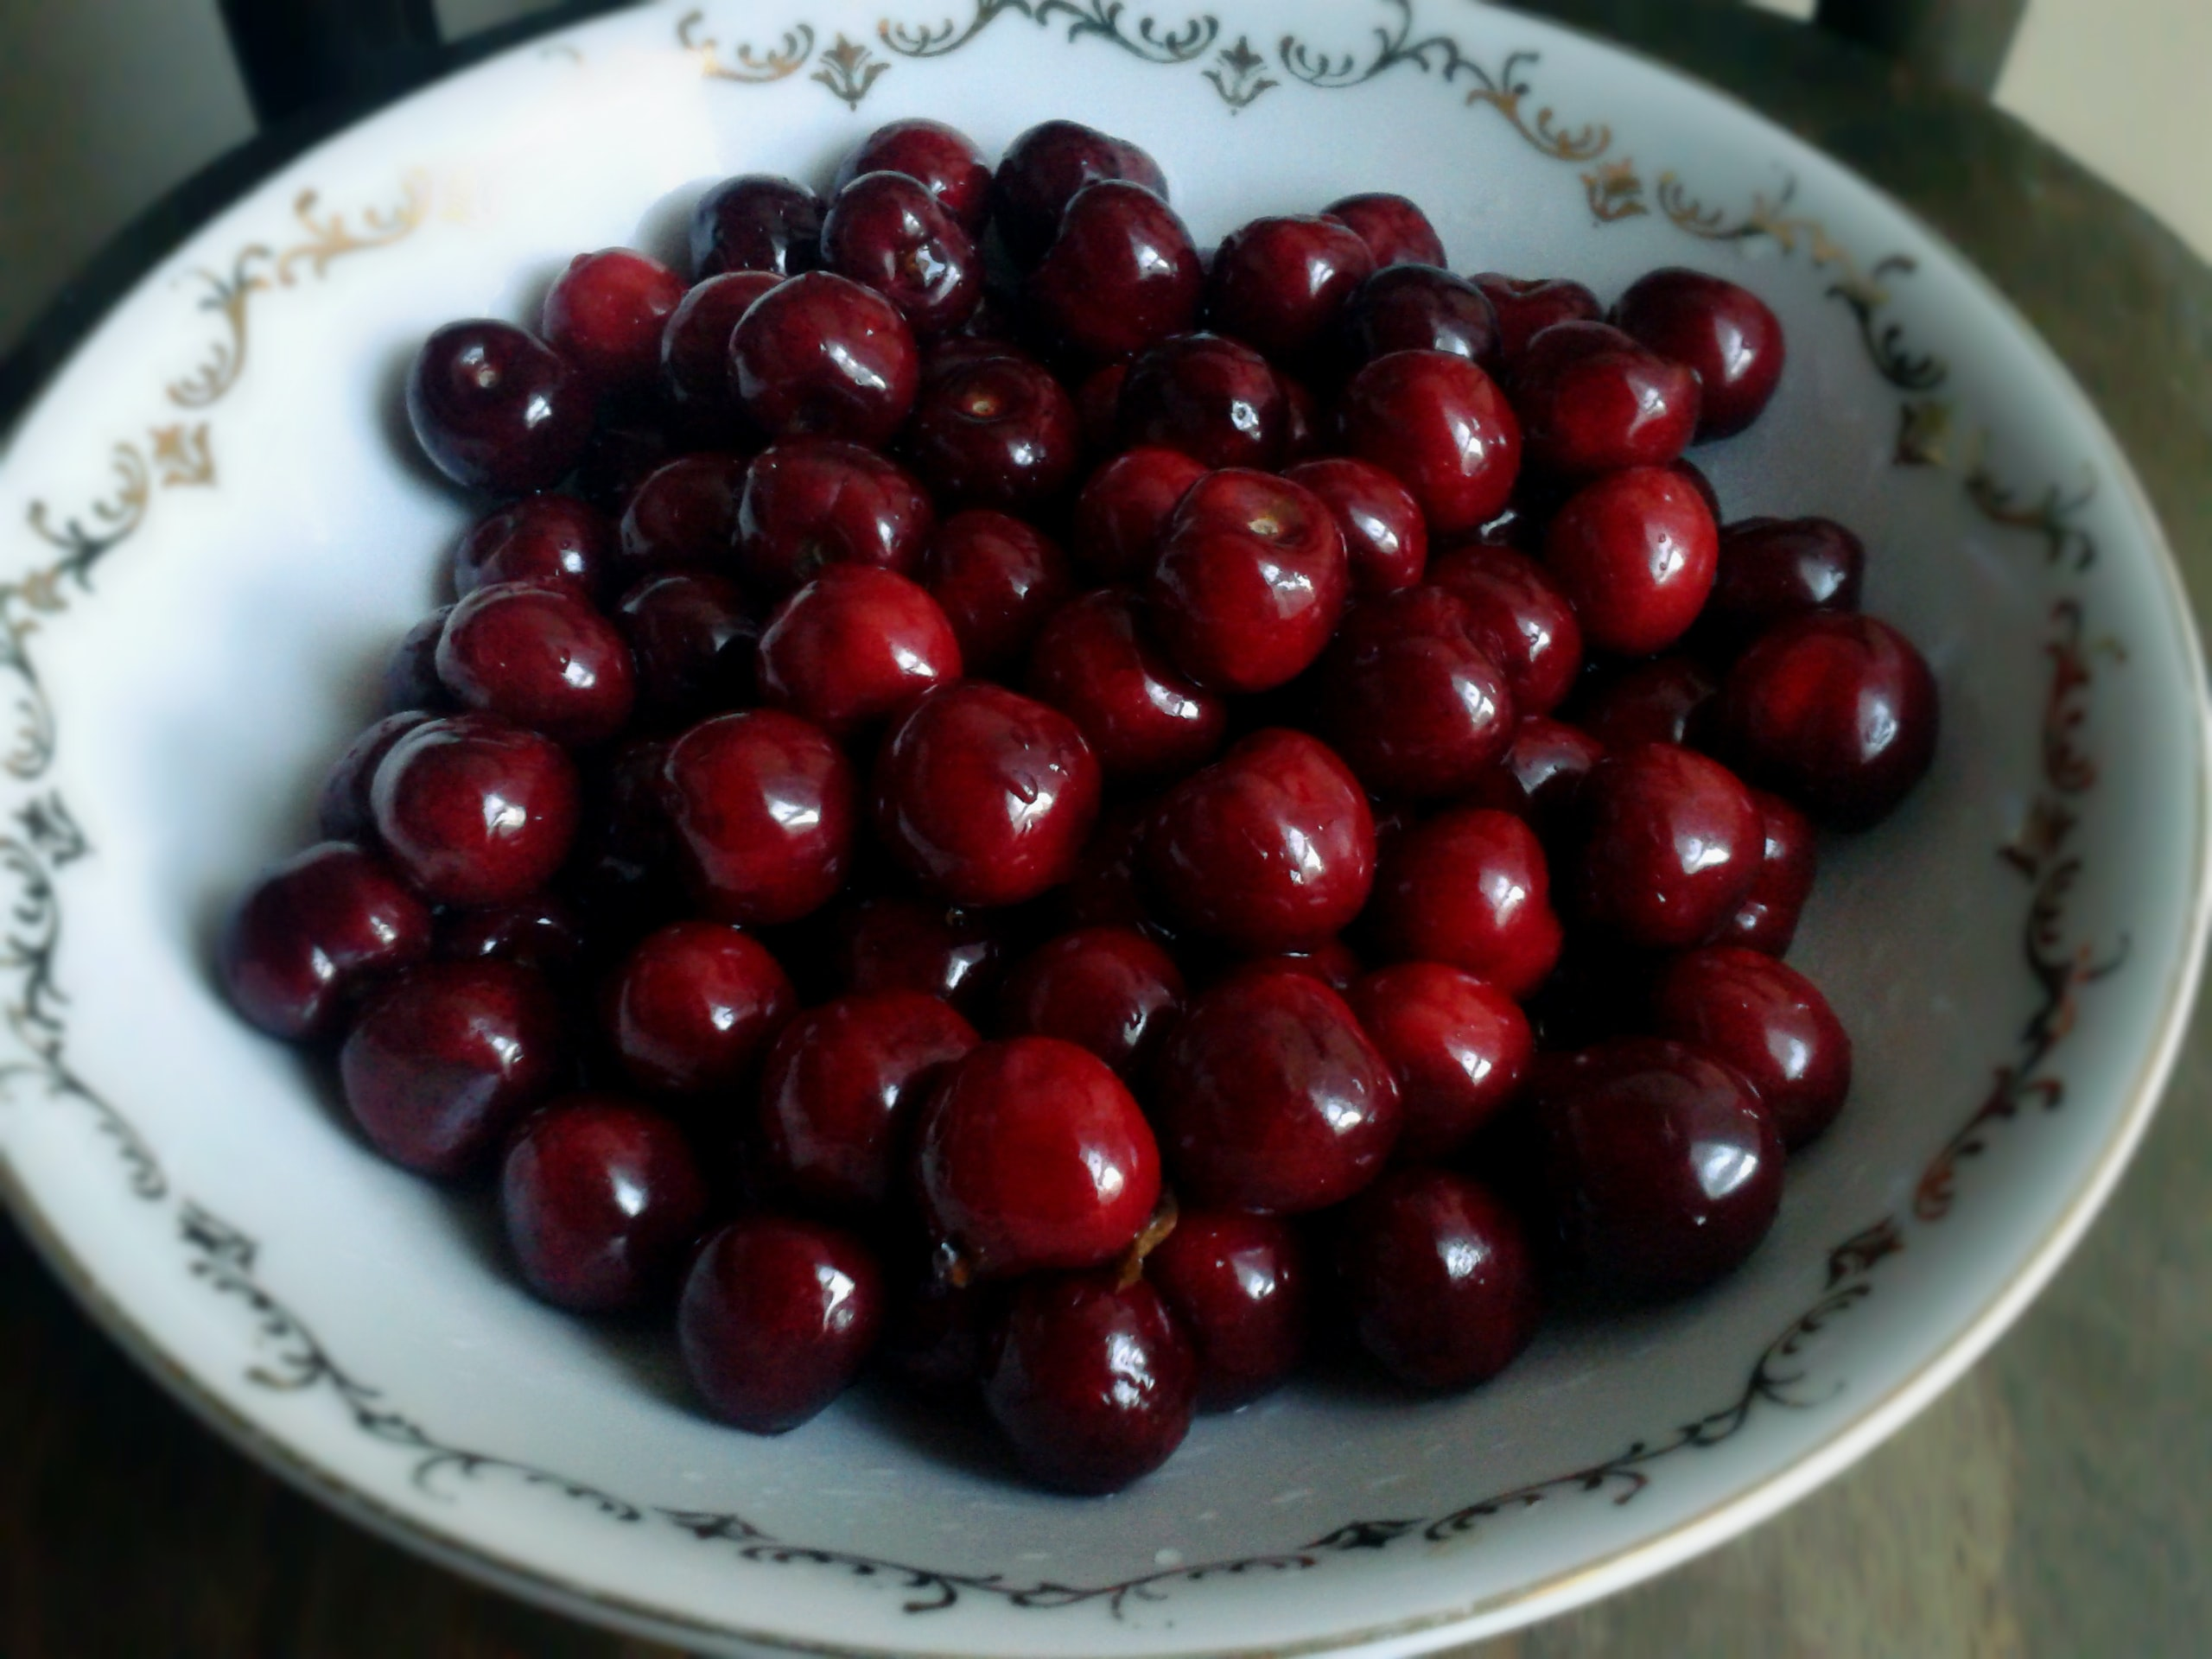 A bowl of cherries.